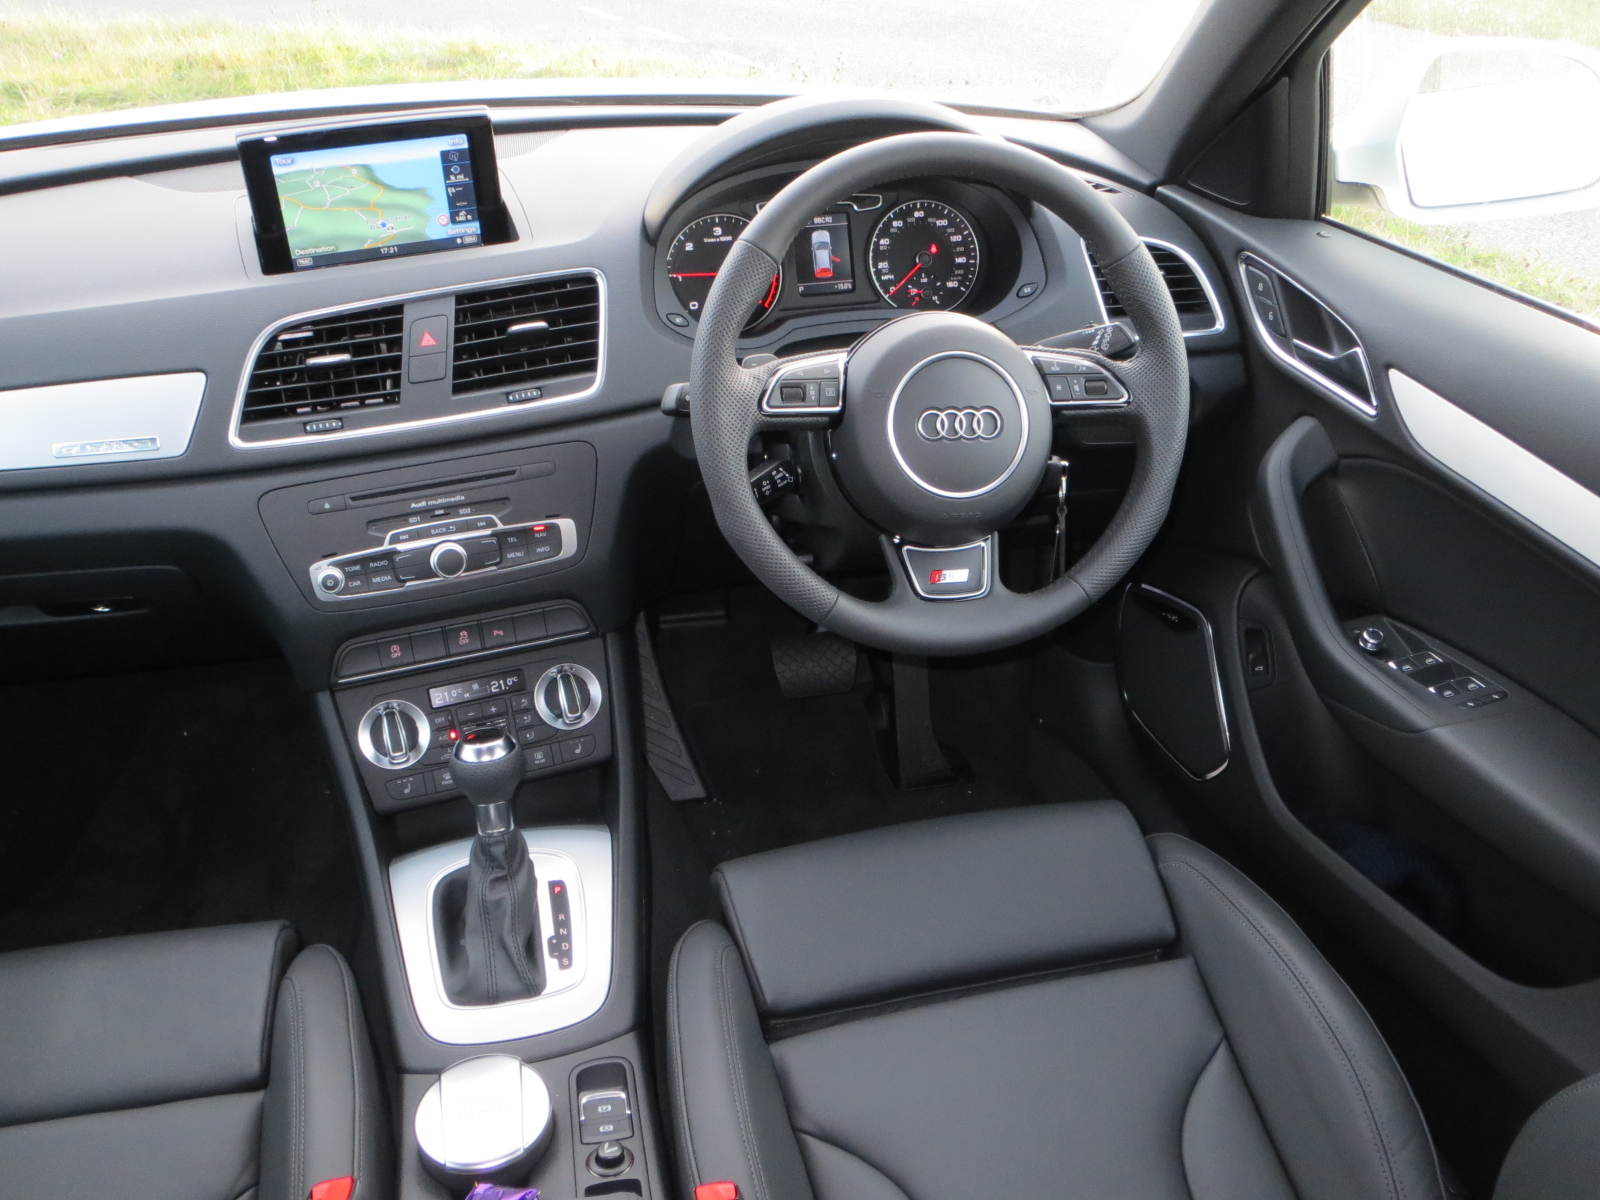 Audi Q3 Tdi Quattro S Line 140 Ps S Tronic Road Test Report And Review